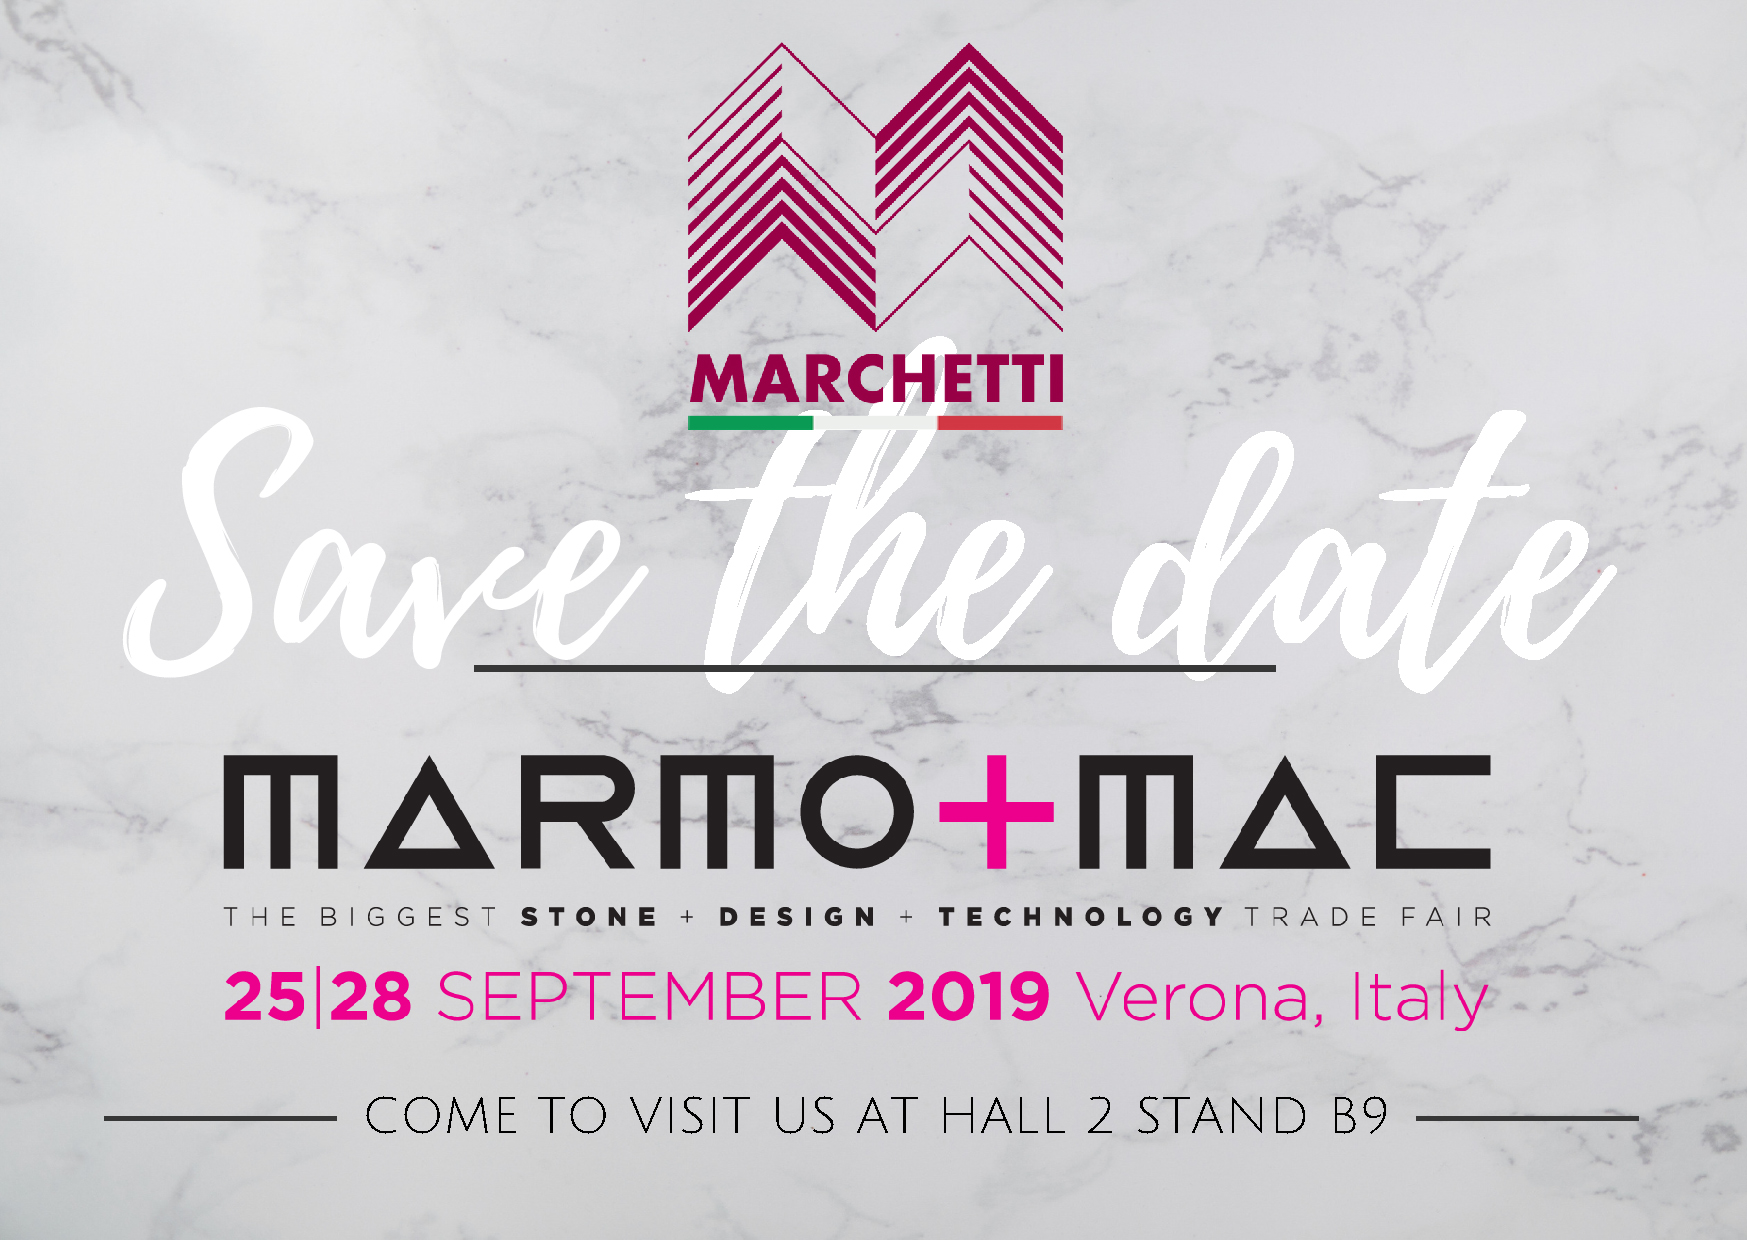 save the date Marchetti.jpg